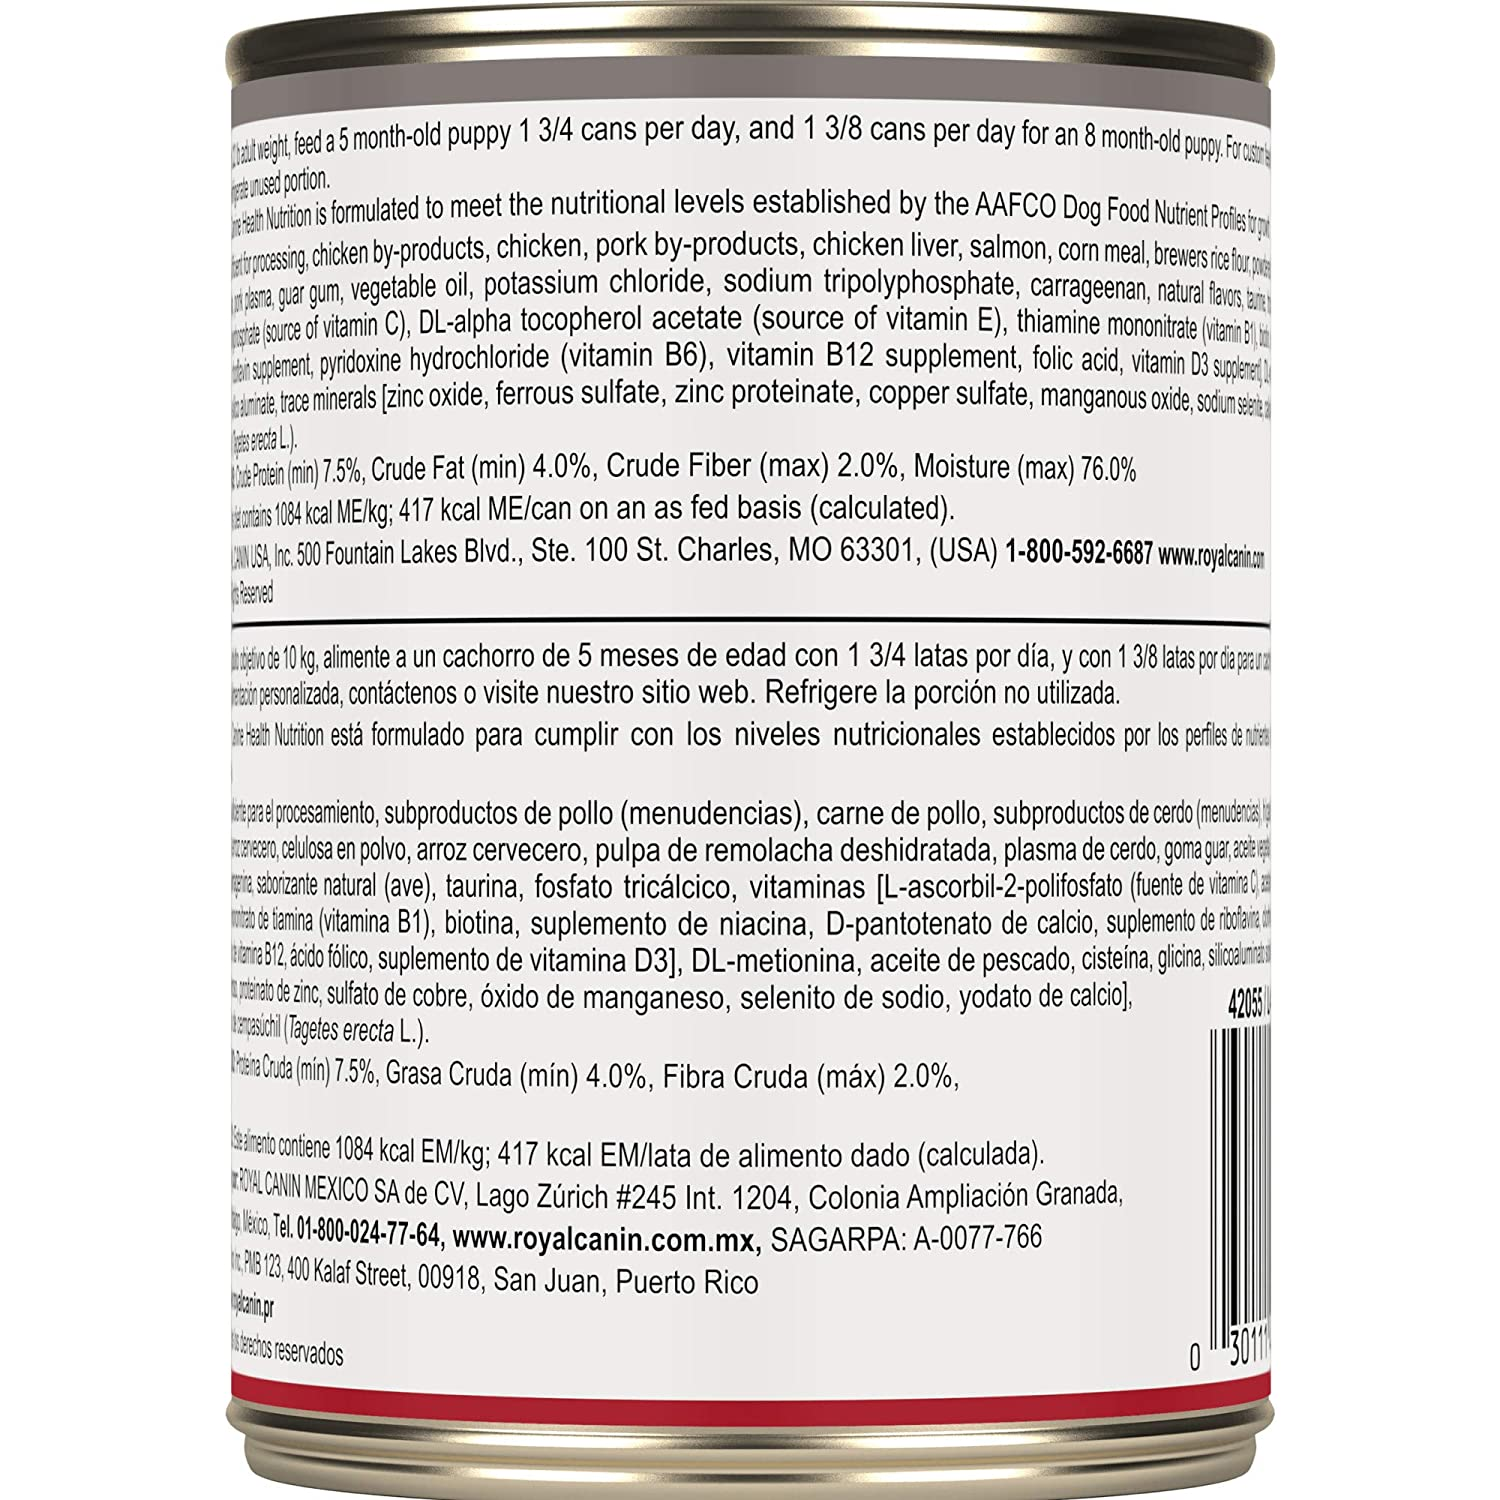 Amazon.com: Royal Canin Advanced Nutrition Puppy Canned Dog ...